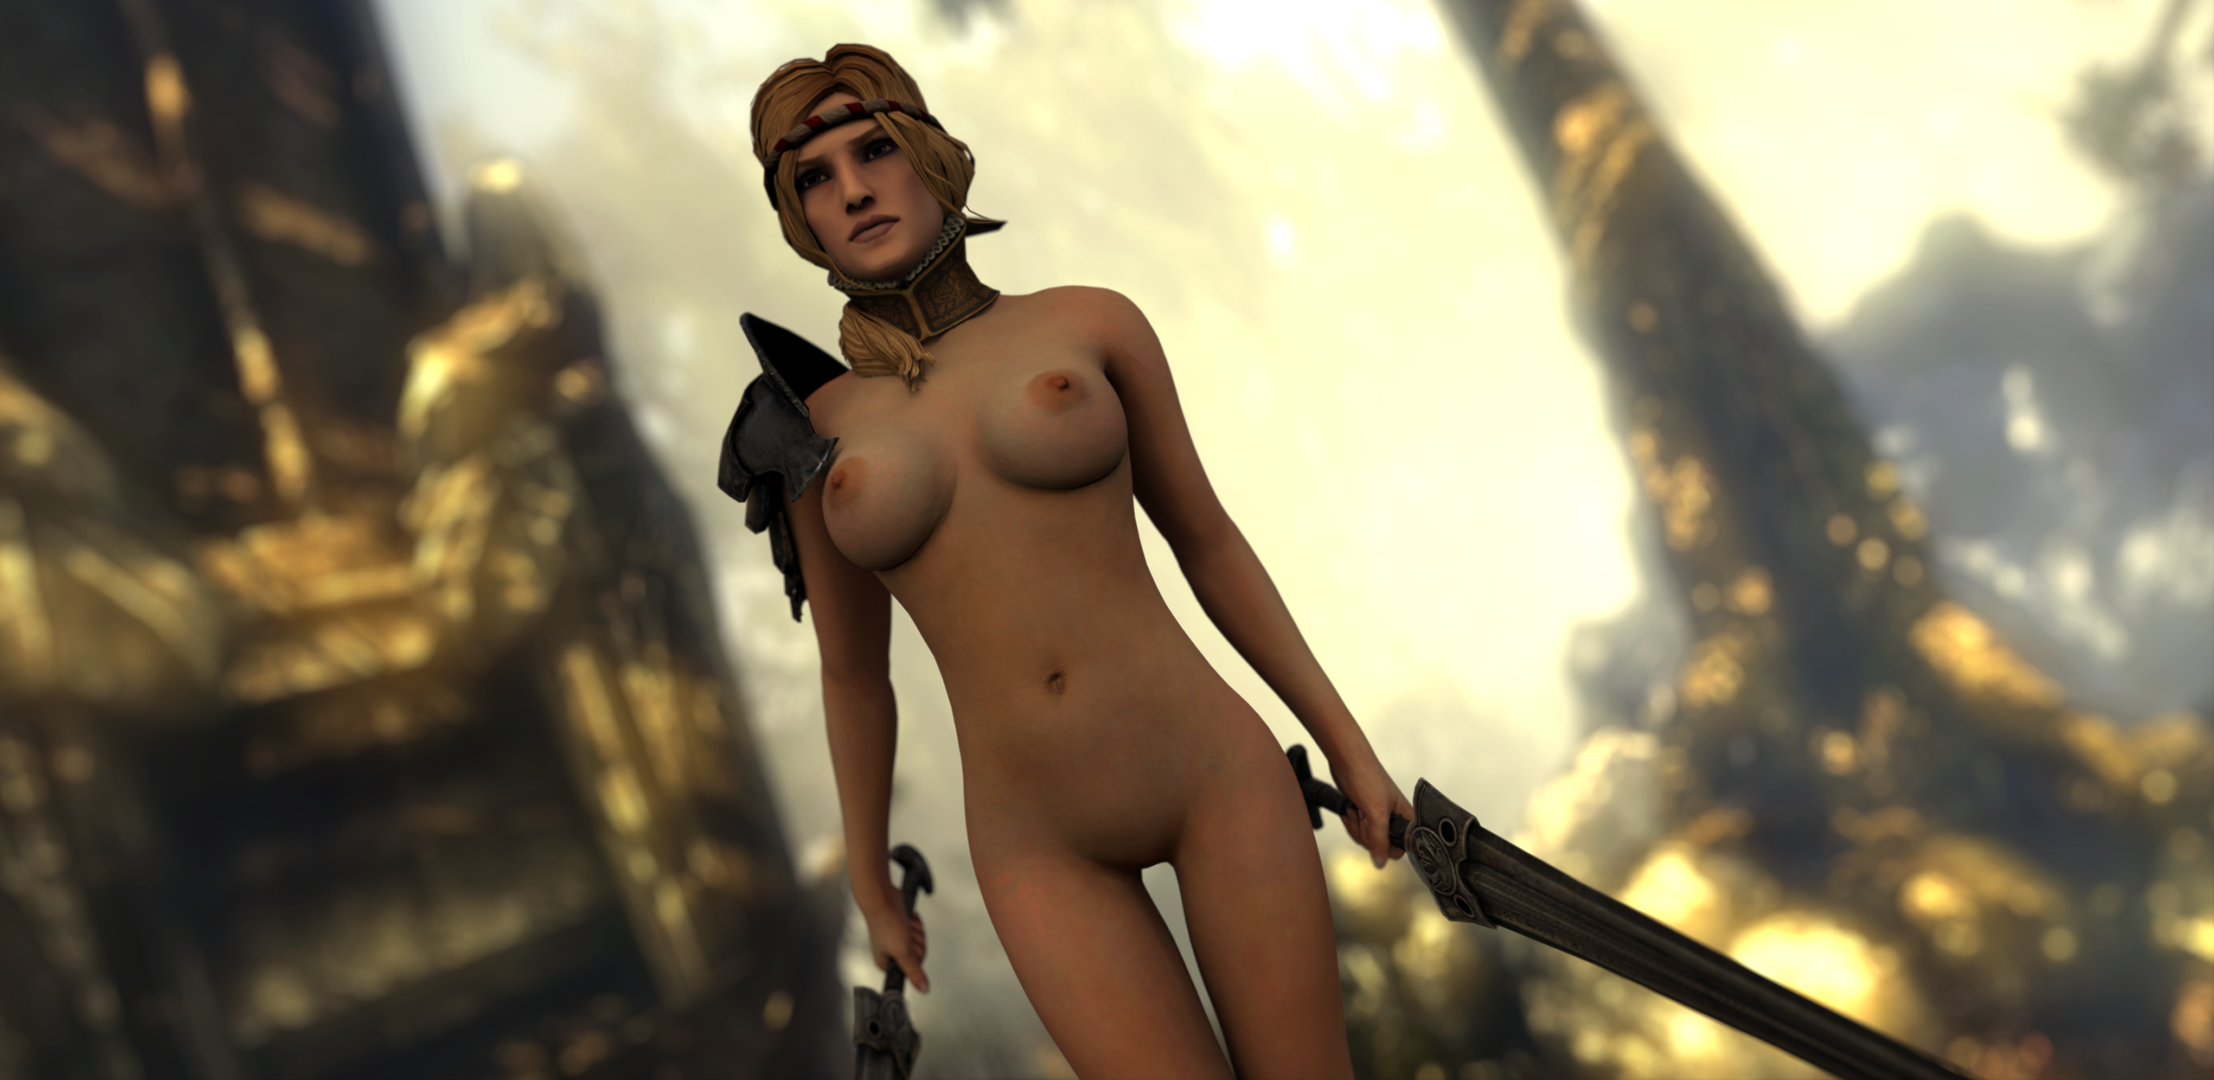 The witcher 3 nude pussy fucks videos